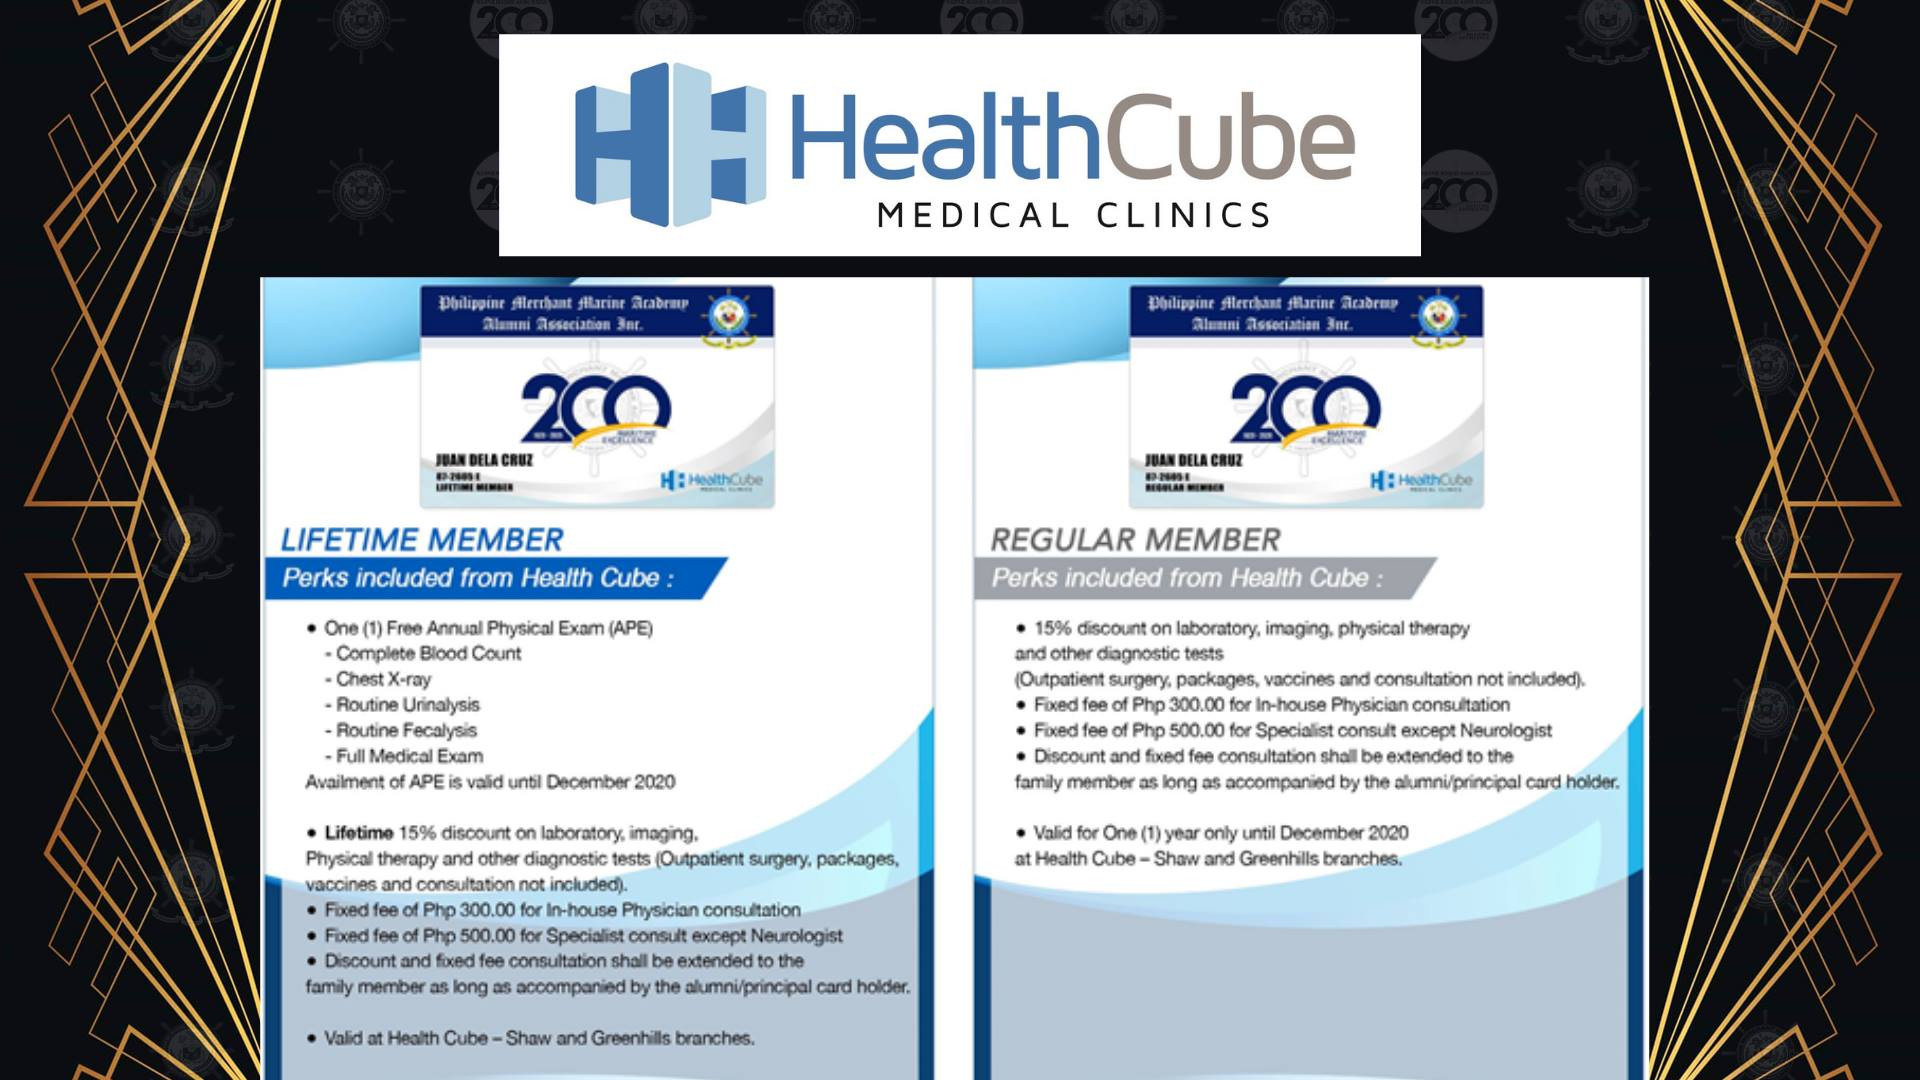 HealthCube benefits